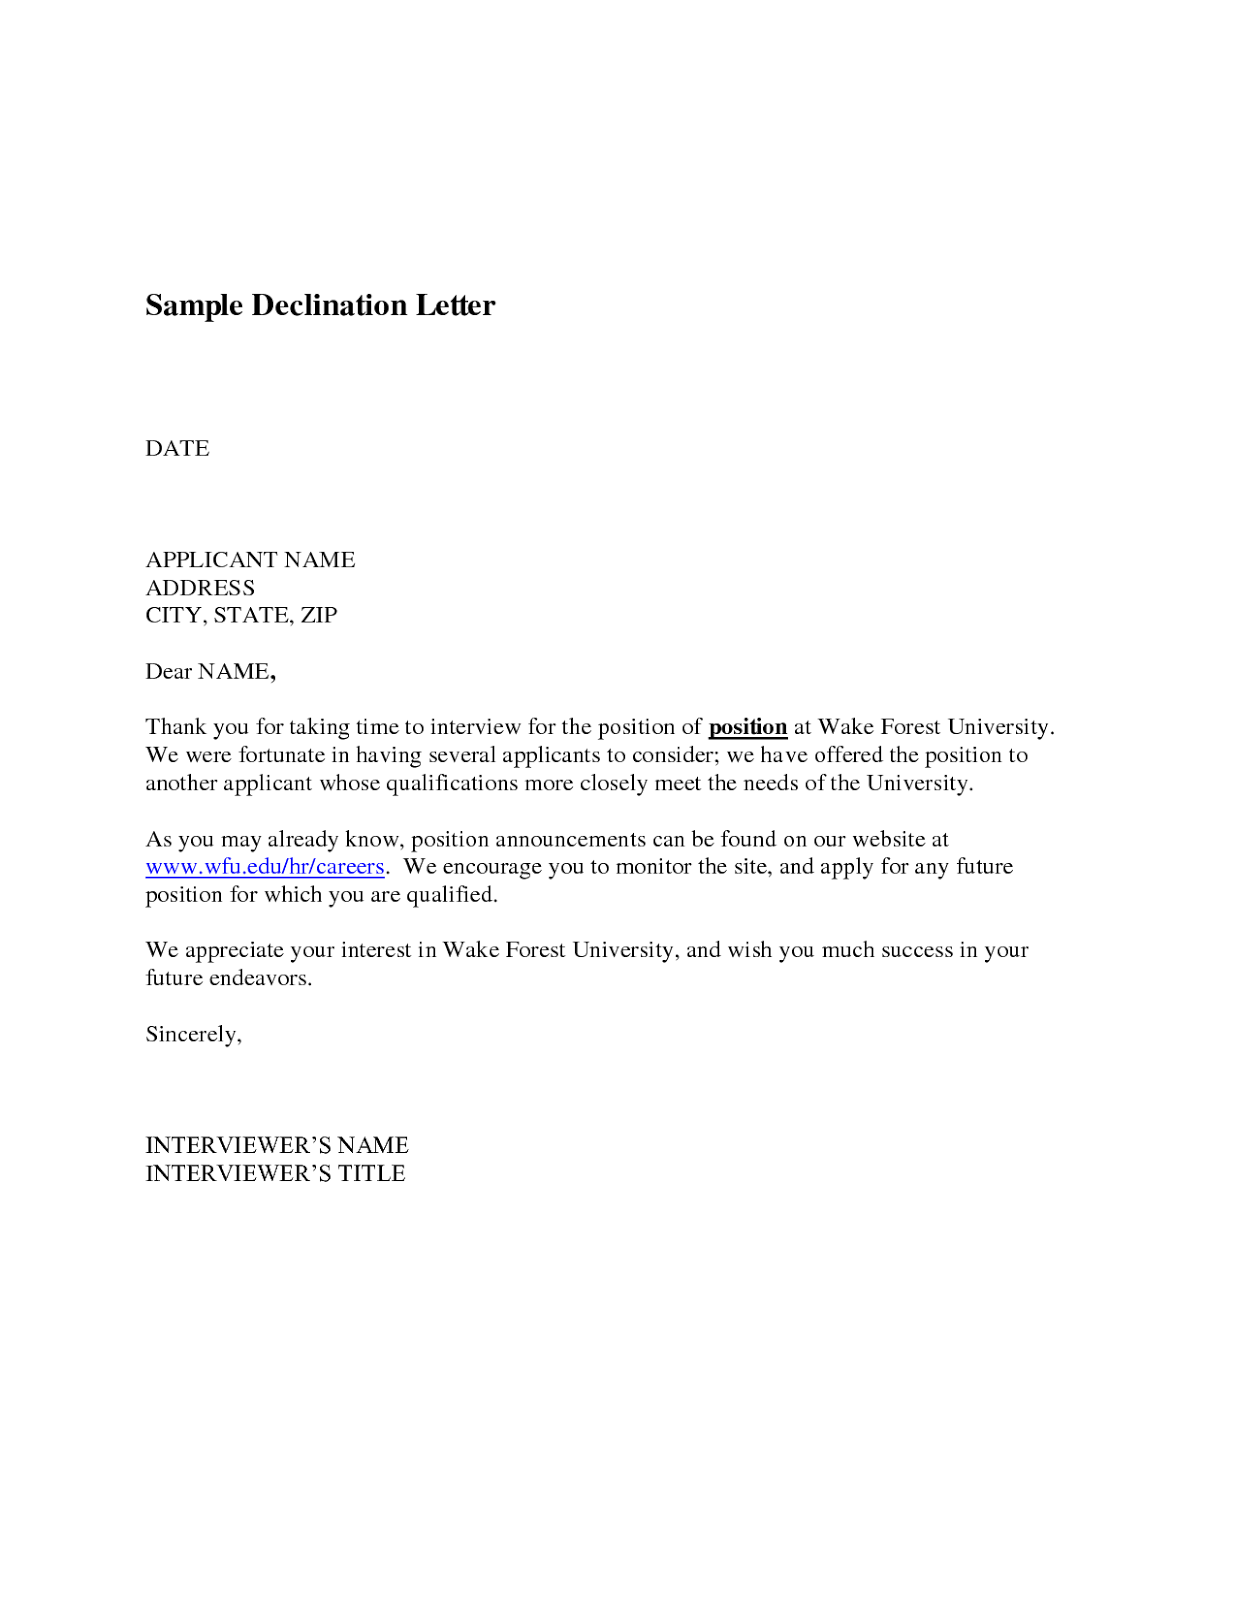 Job Posting Cover Letter Samples For Sample Letters  Home Design